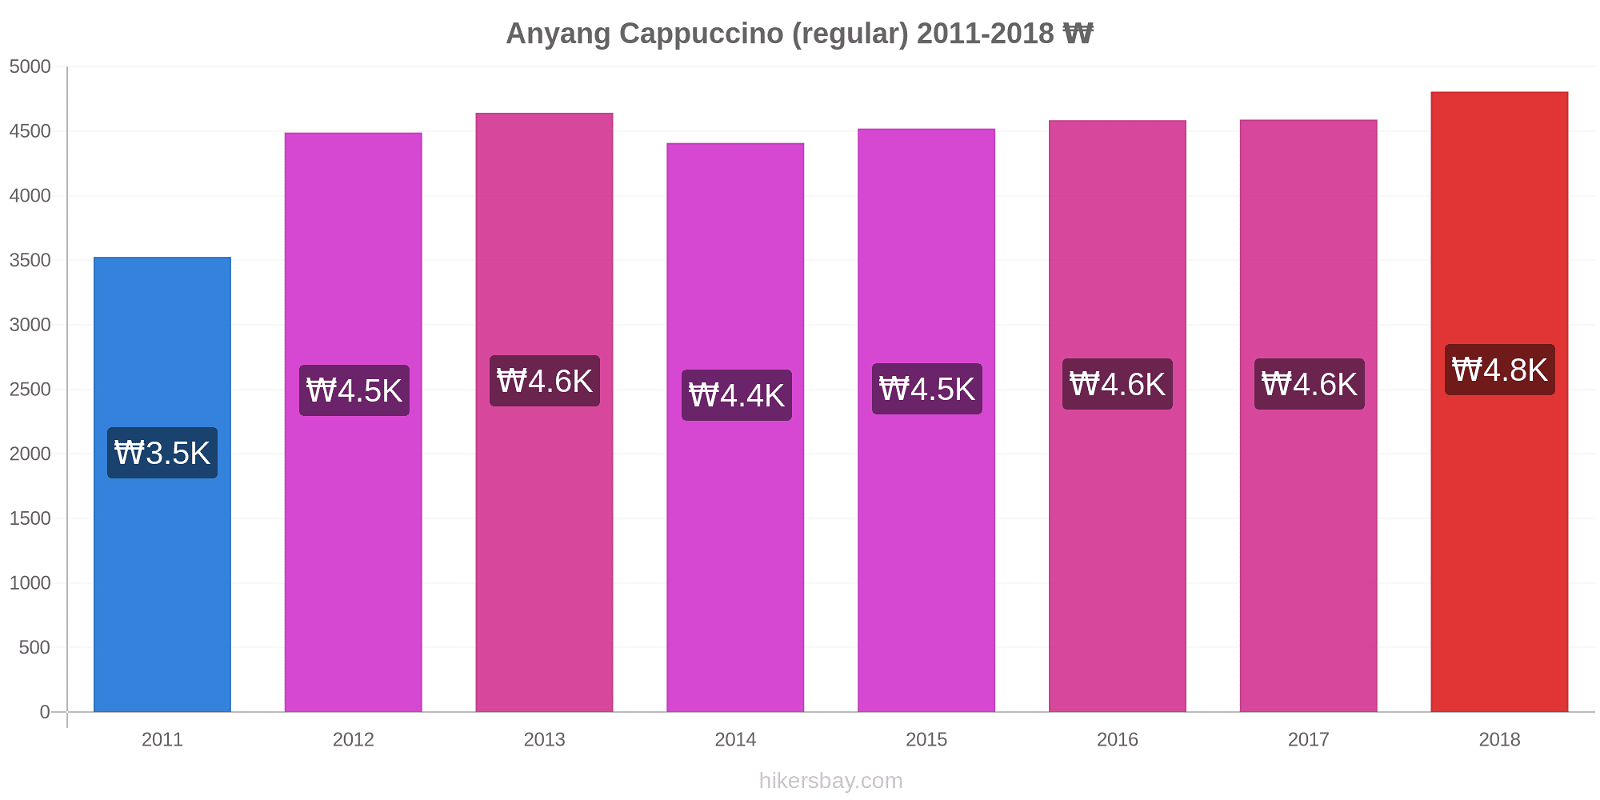 Anyang price changes Cappuccino (regular) hikersbay.com